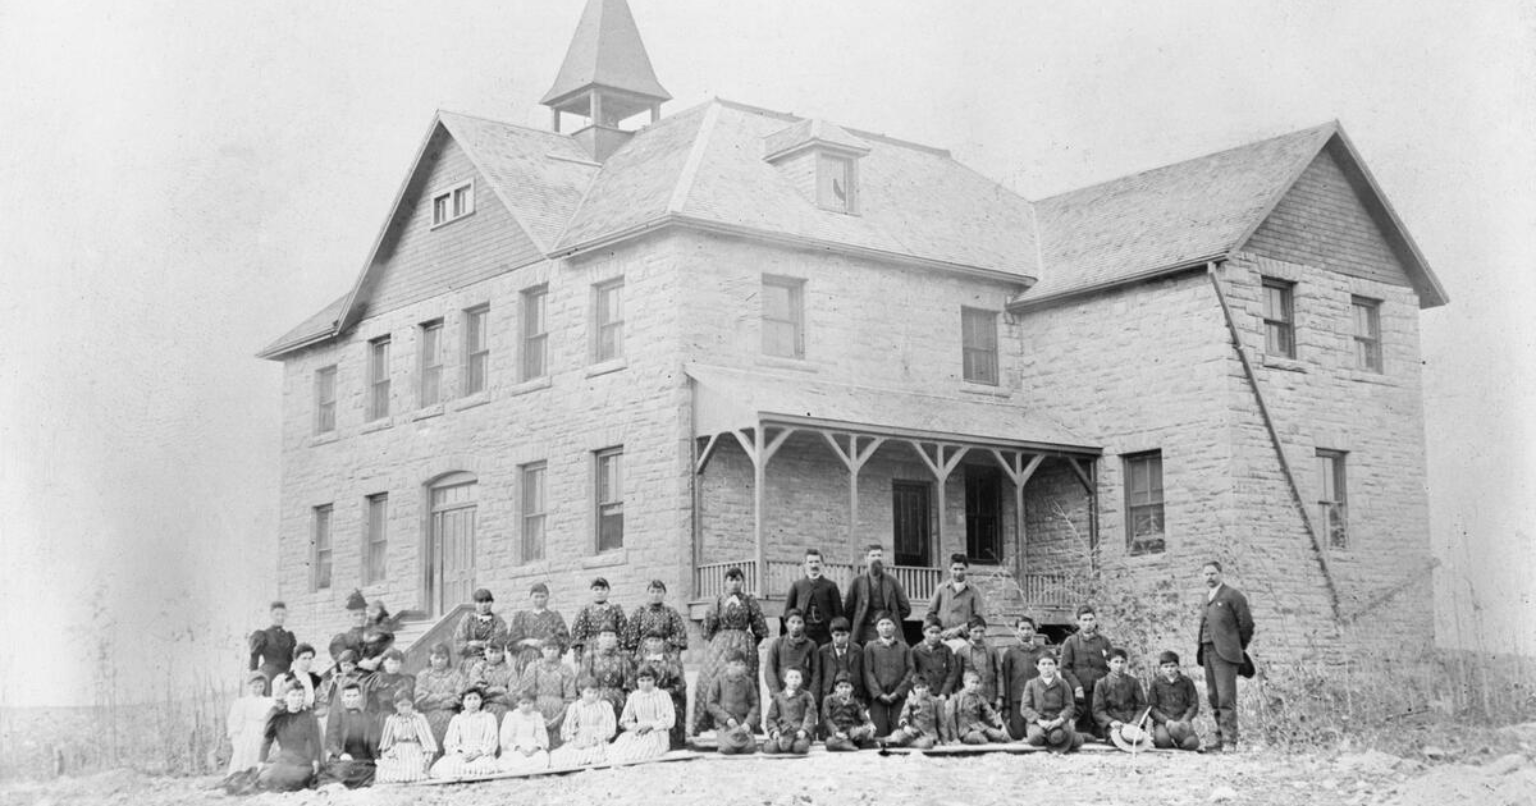 Vintage black and white picture of a institutional building with students and staff posed in front of building.